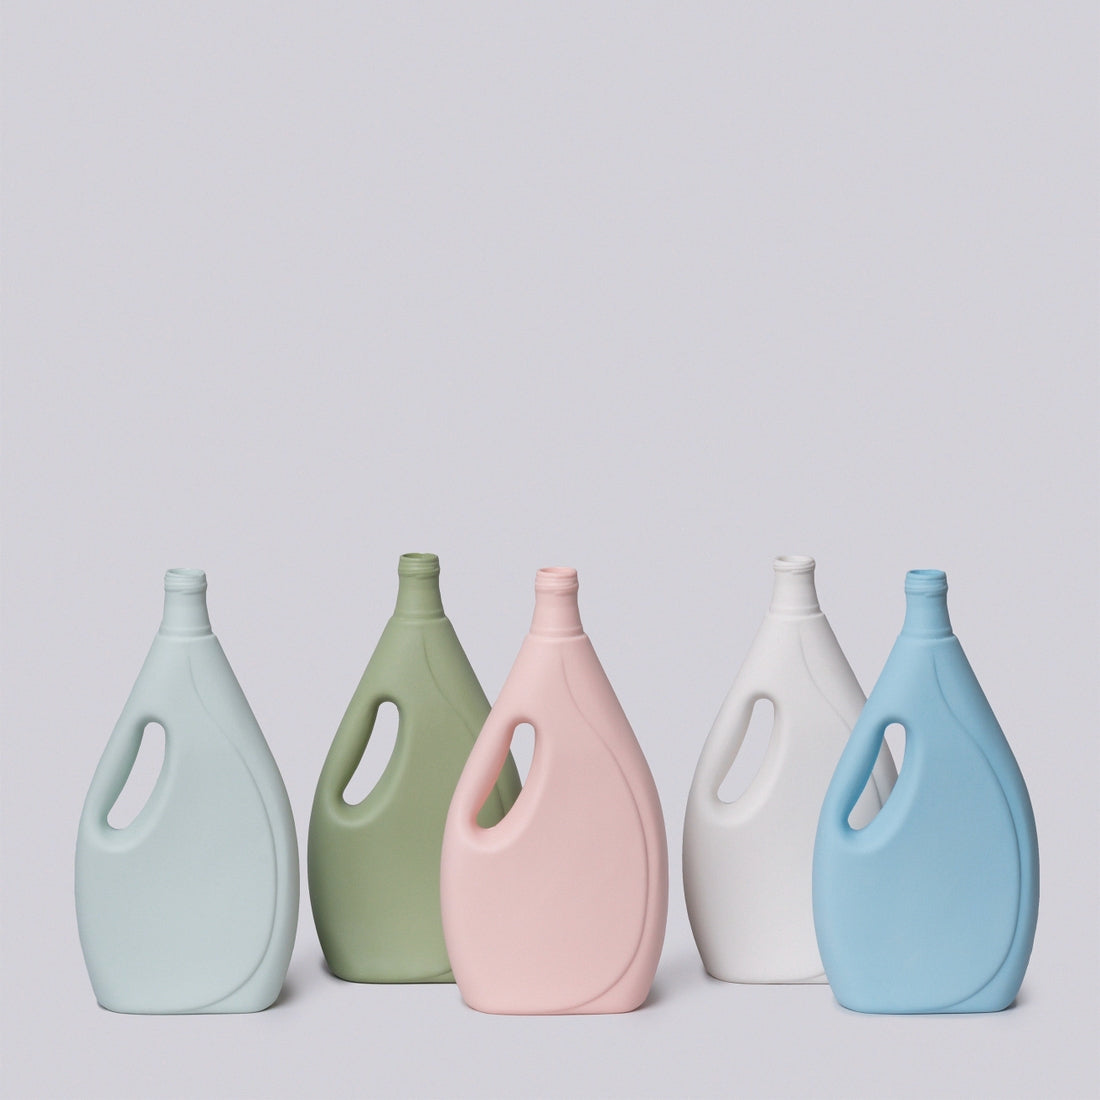 Middle Kingdom: Laundry Detergent Bottle Vase